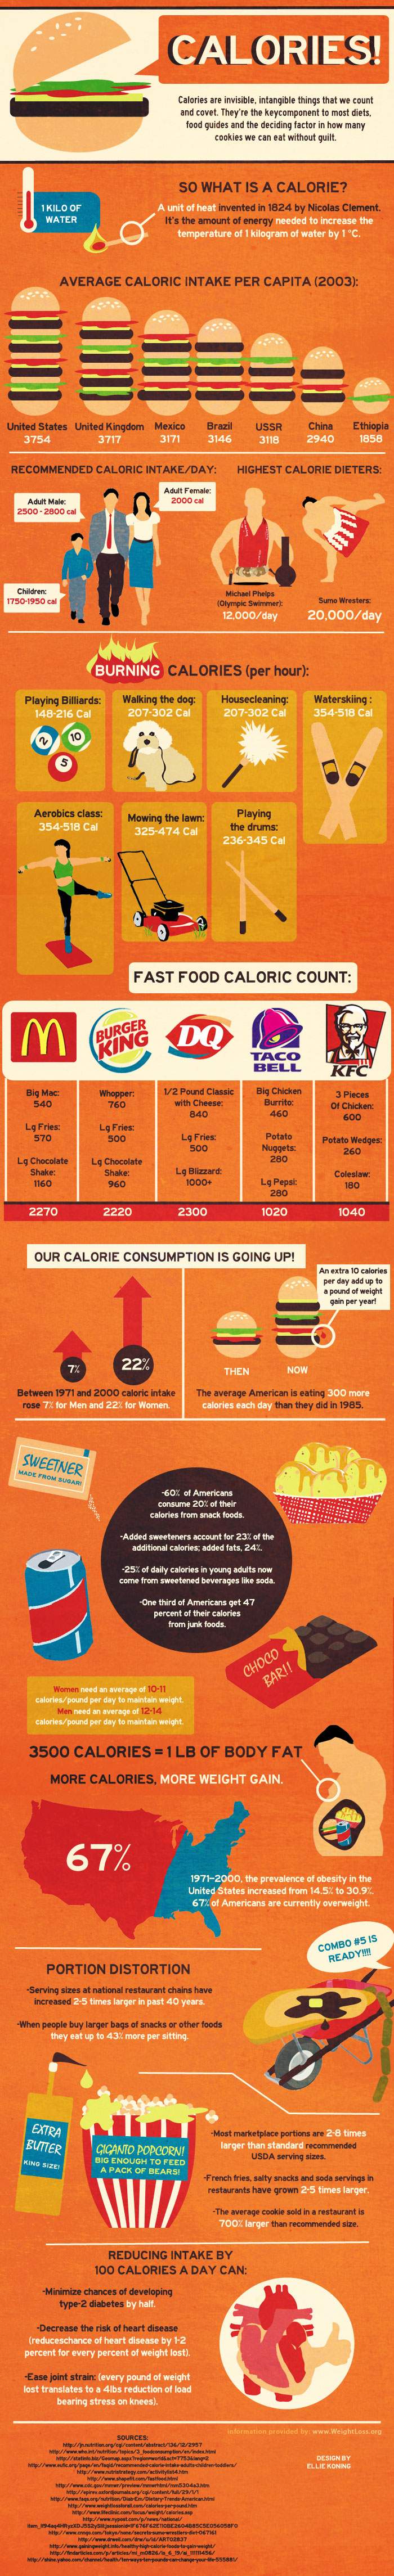 The Cost of Calories   THE Weight Loss Resource